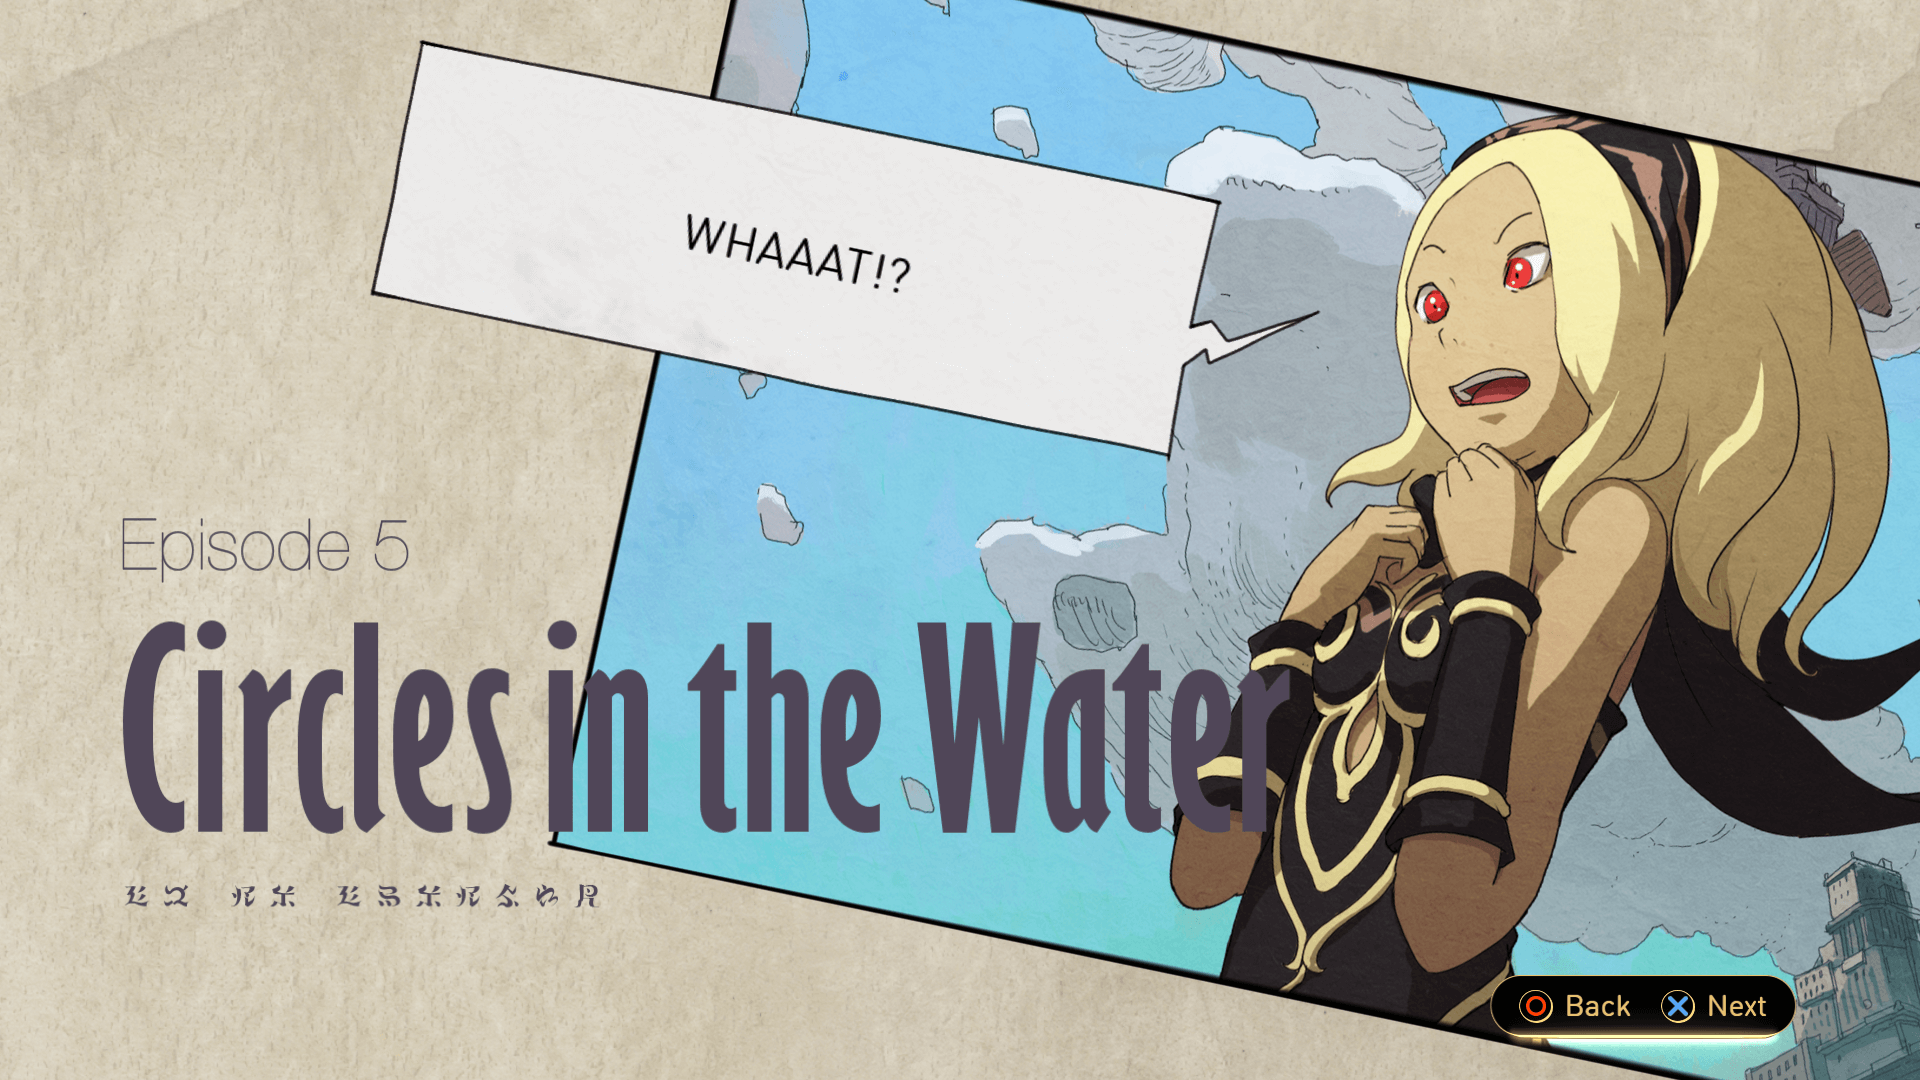 Gravity Rush 2 uses a comic book presentation for most of its cutscenes.